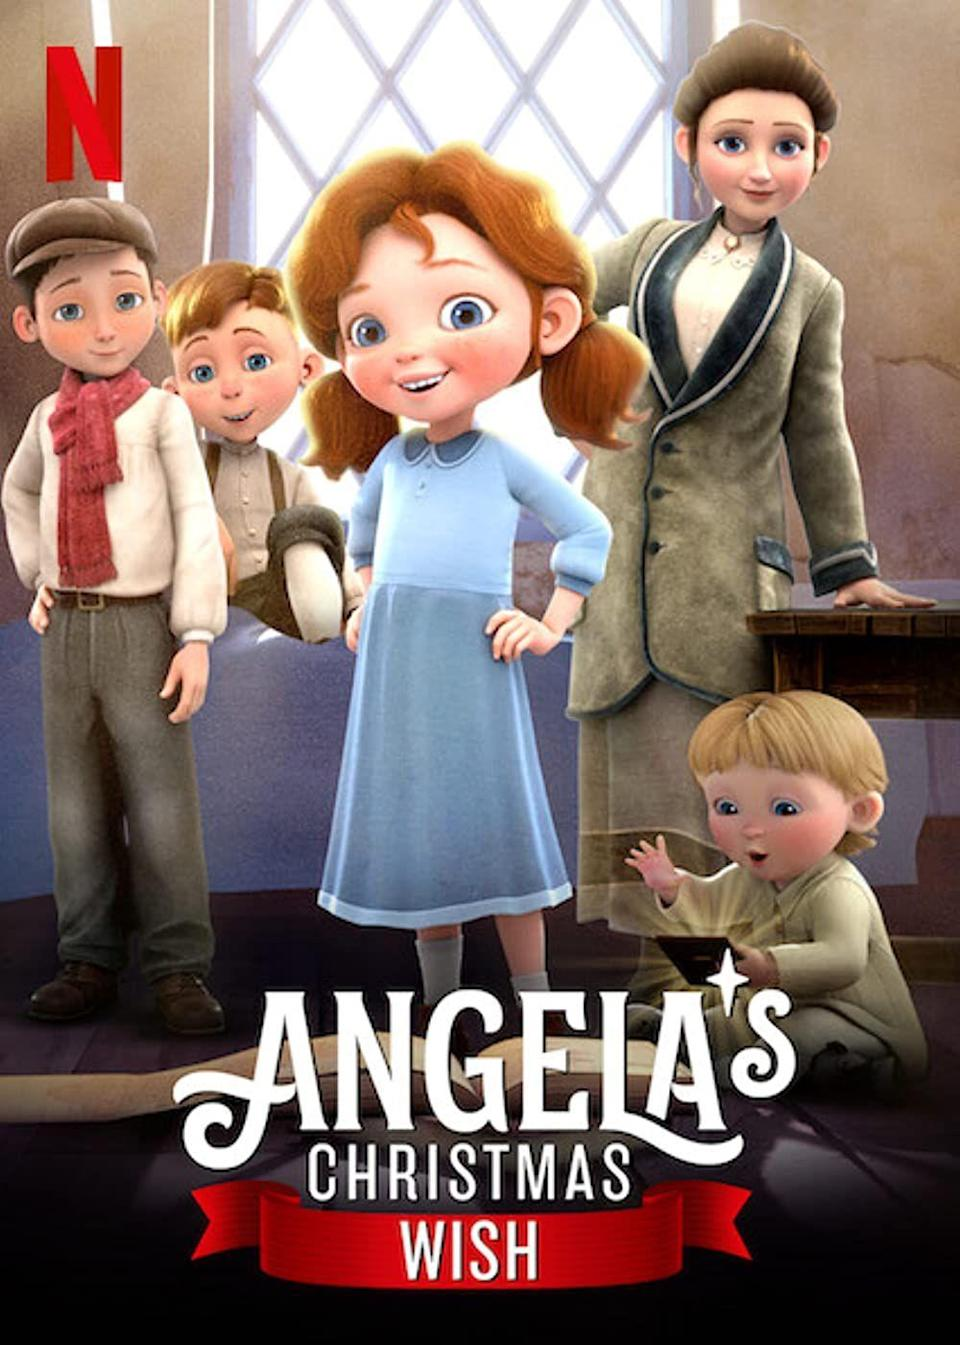 """<p>Add <em>Angela's Christmas</em><em> Wish</em> to the top of your must-watch list the next time the whole family is looking to spend the night in together. This sweet story, based on a children's book by Pulitzer Prize–winning author Frank McCourt, follows a young Irish girl who, after seeing that the baby Jesus doll in the local nativity scene has been left without a blanket, makes it her personal mission to ensure he's able to stay warm. </p><p>This, of course, is easier said than done. The adventures Angela has, plus the film's overall message of generosity might make it a new family favorite.</p><p><a class=""""link rapid-noclick-resp"""" href=""""https://www.netflix.com/title/80230507"""" rel=""""nofollow noopener"""" target=""""_blank"""" data-ylk=""""slk:Watch Now"""">Watch Now</a></p>"""